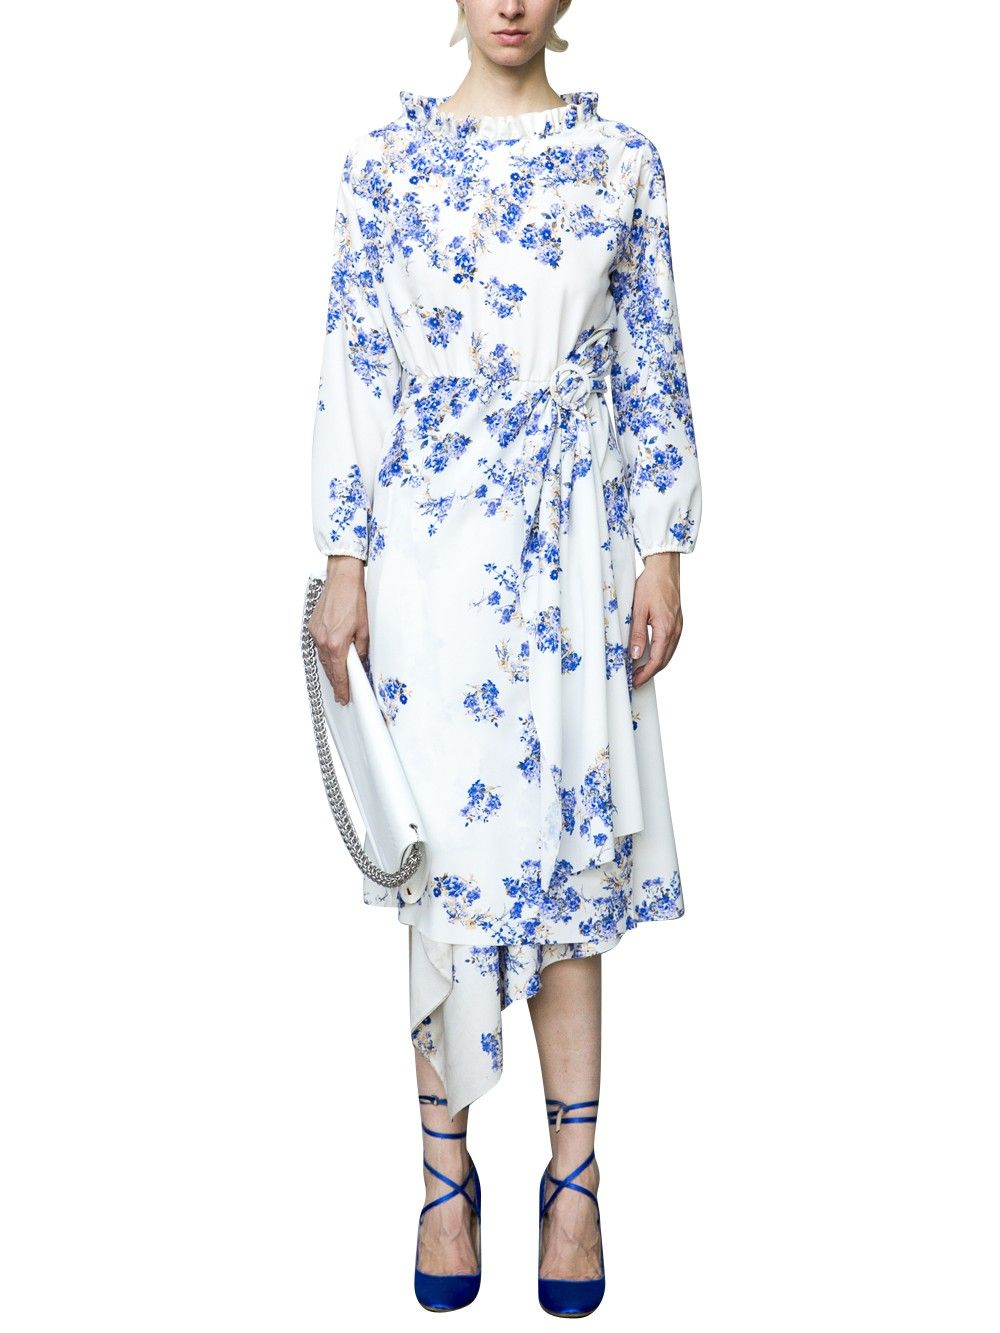 White floral dress get on my body pinterest white floral dress vetements white floral dress izmirmasajfo